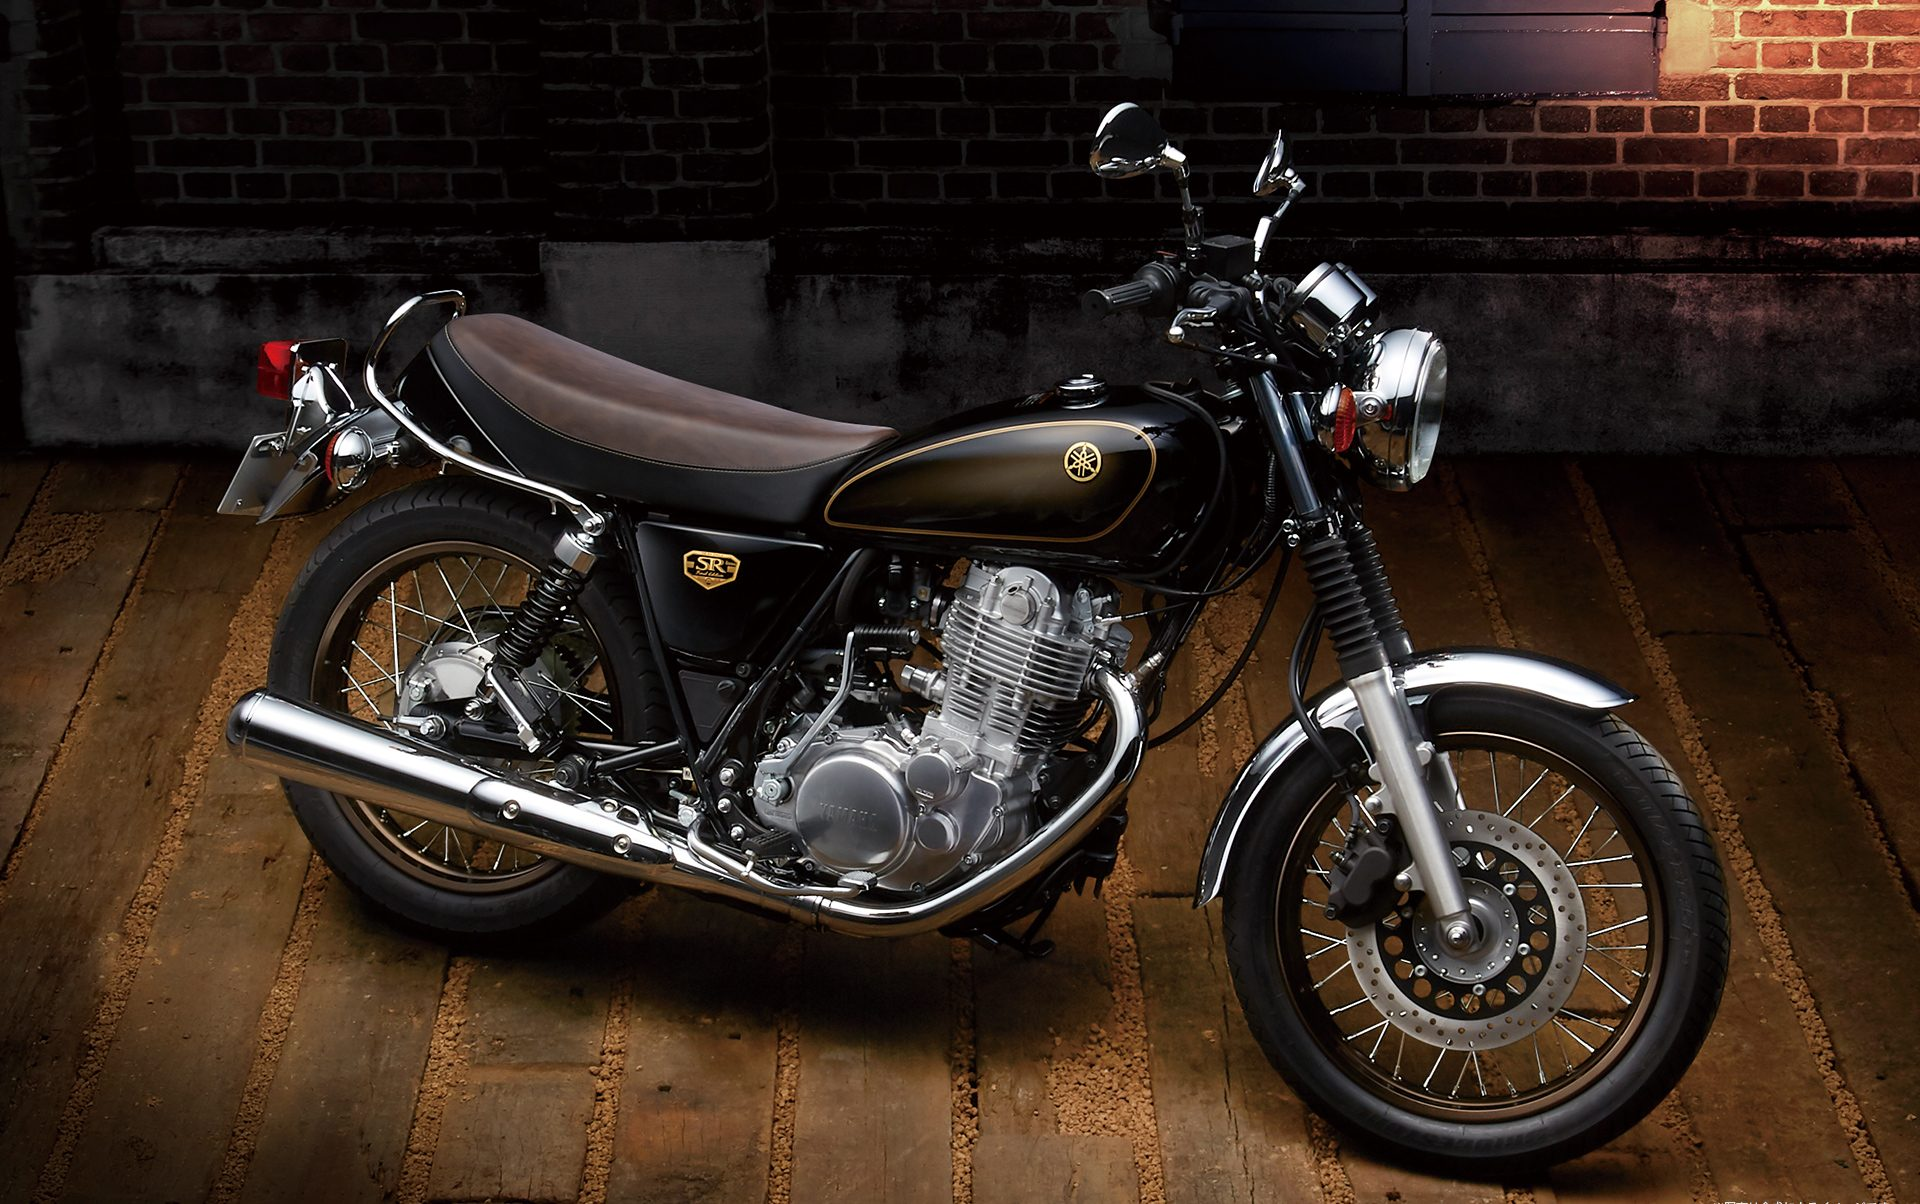 Yamaha SR400 rides into the sunset after 43 years